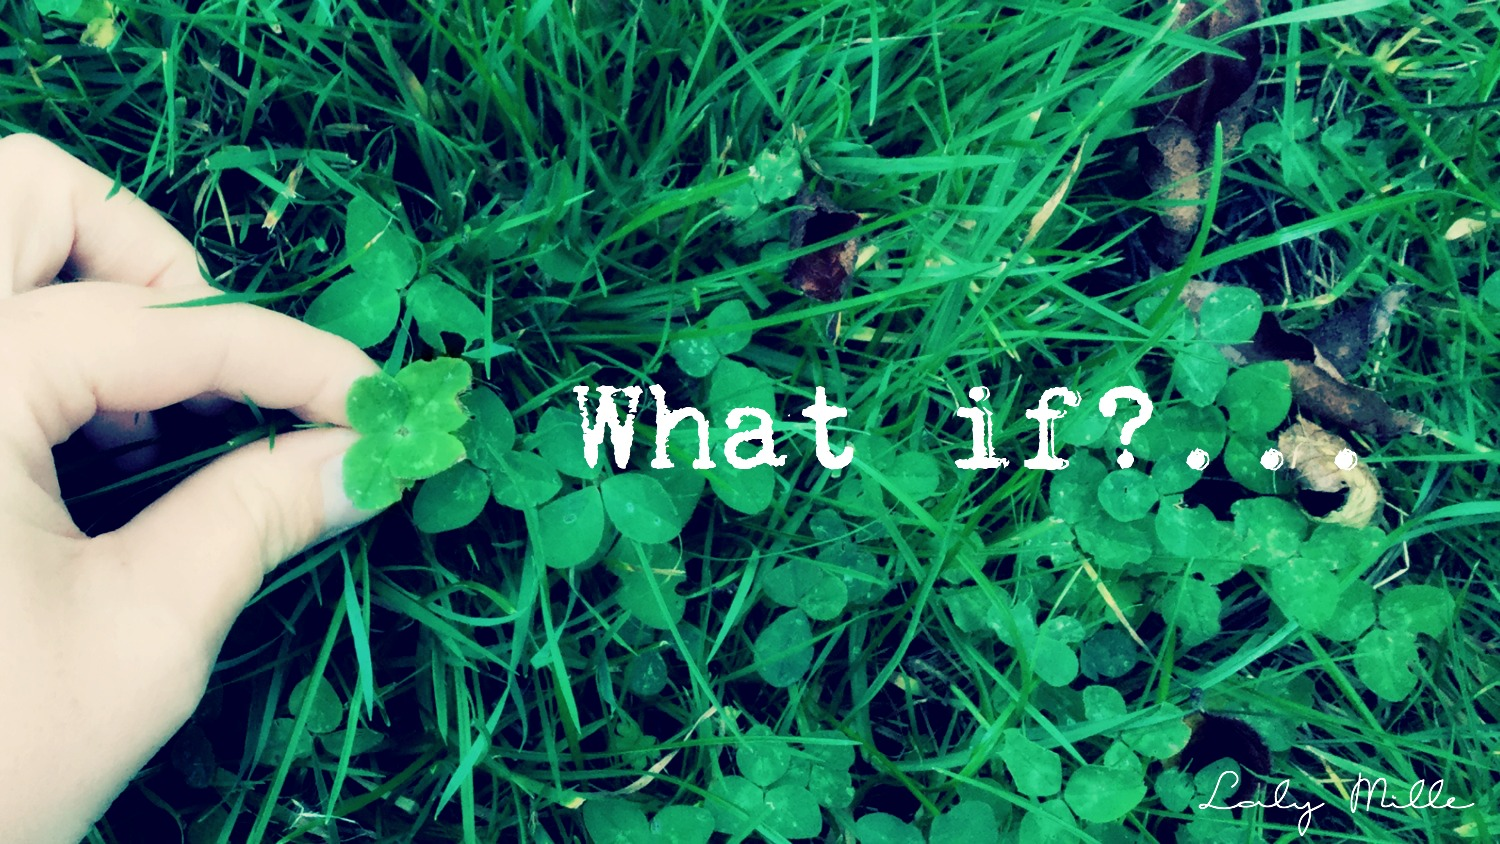 What if?... Invite magic into your life this year © 2016 Laly Mille